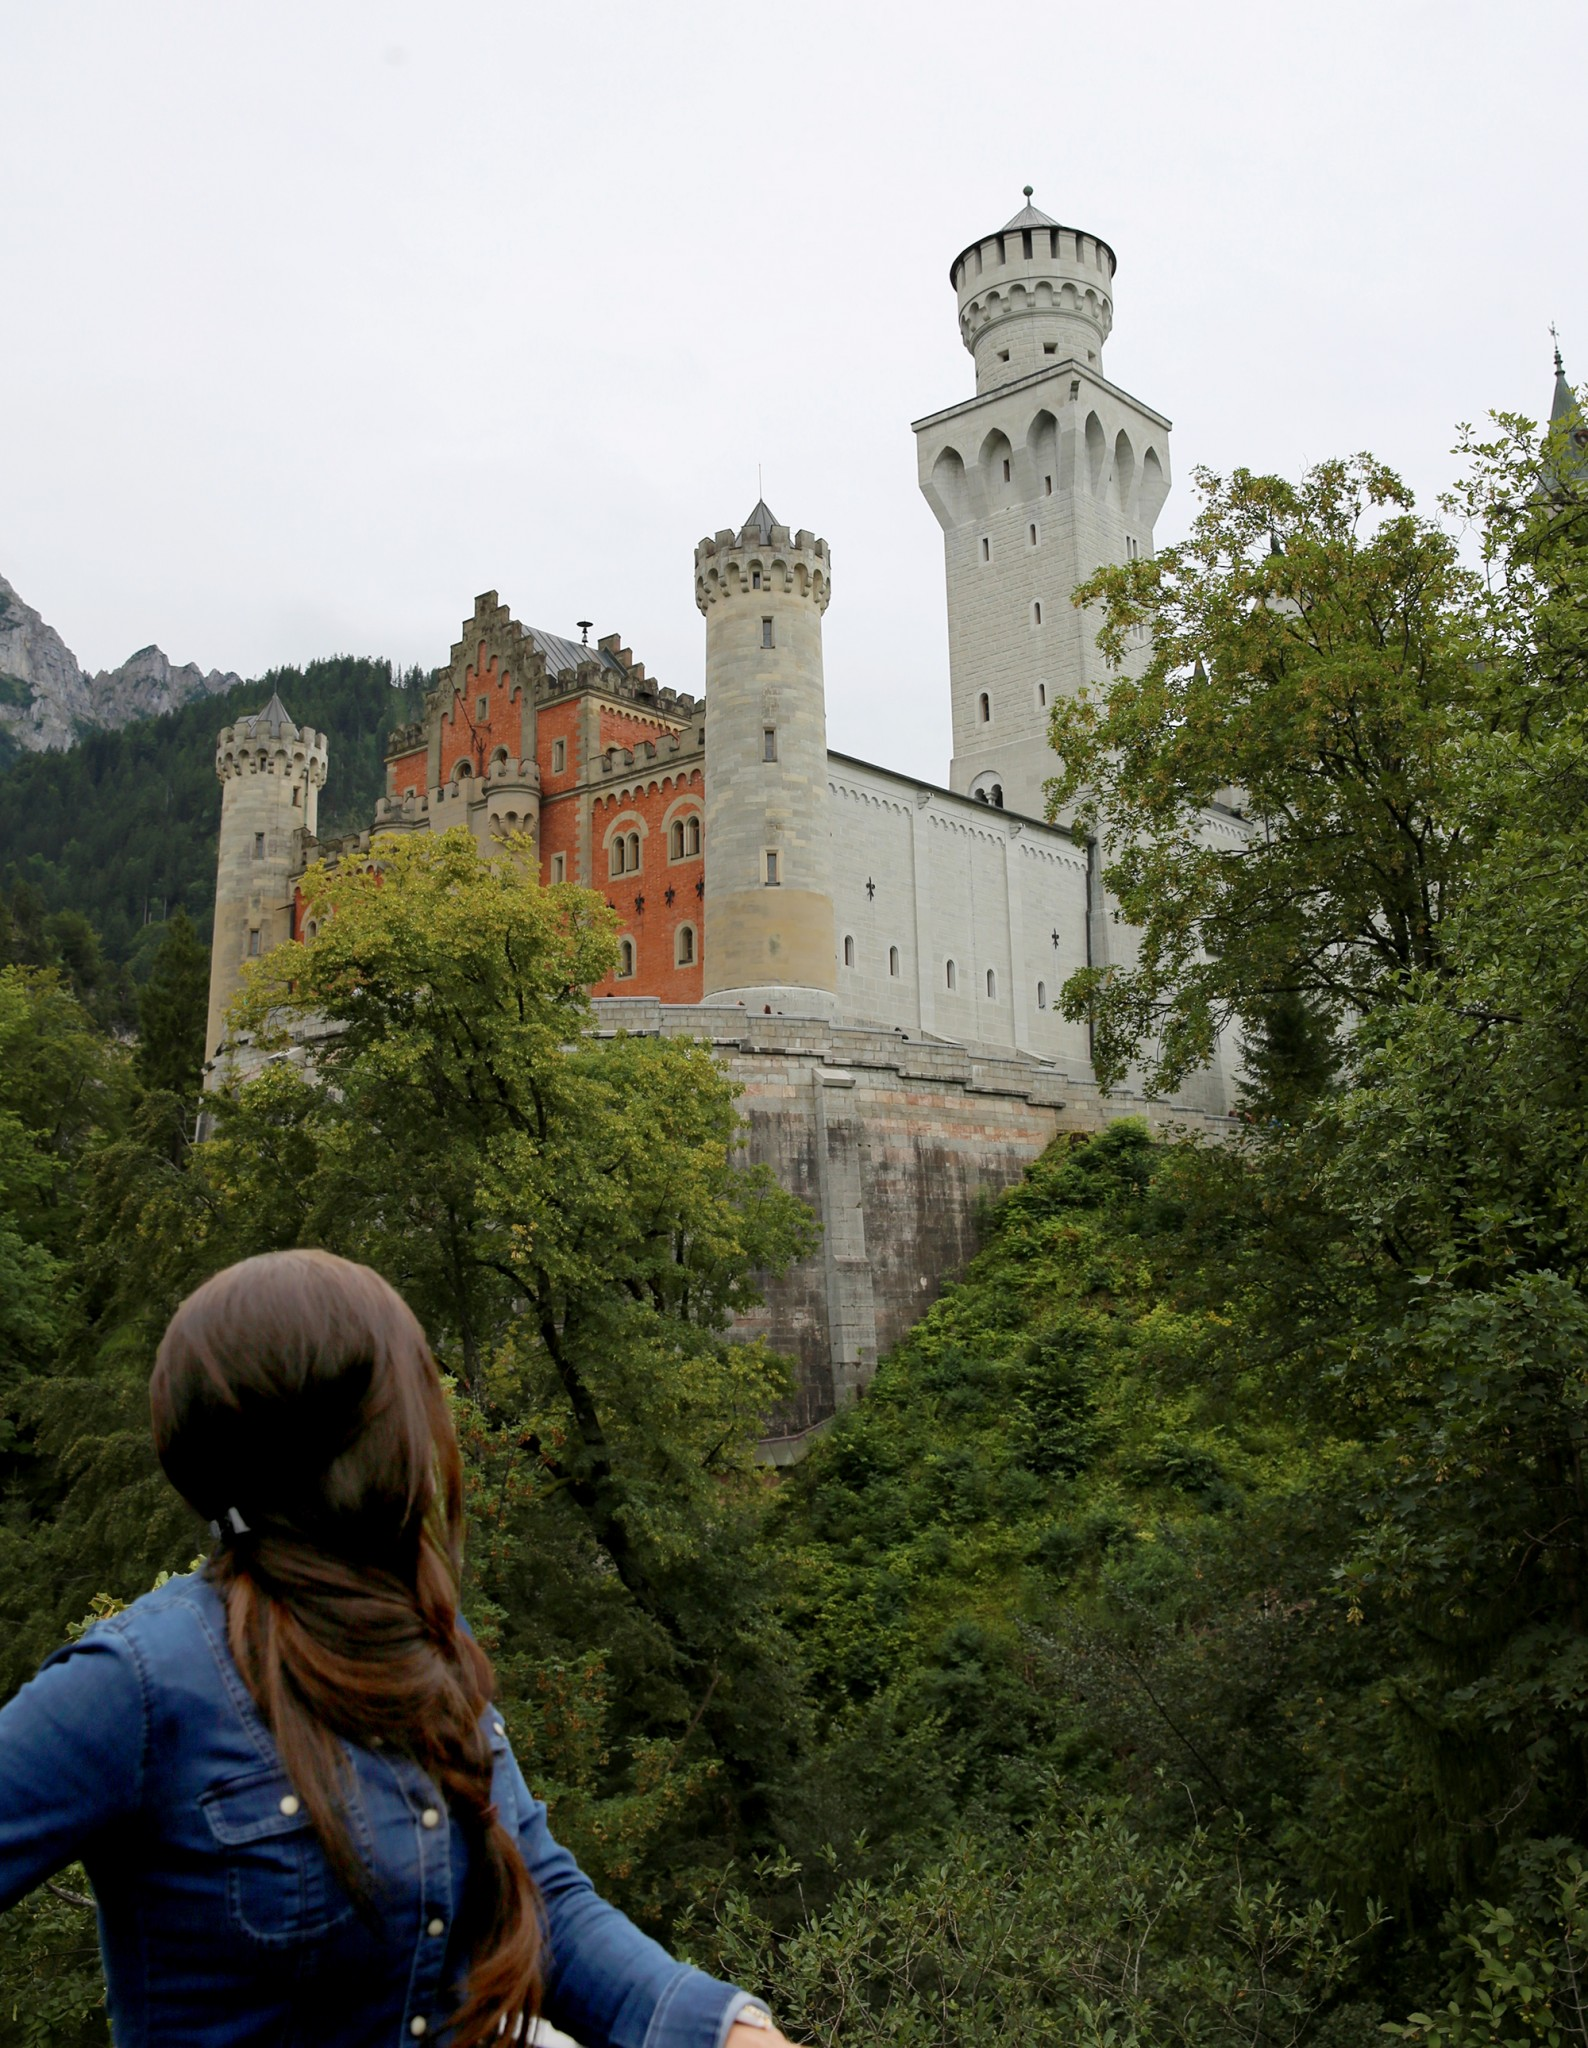 Castle in Bavaria Germany